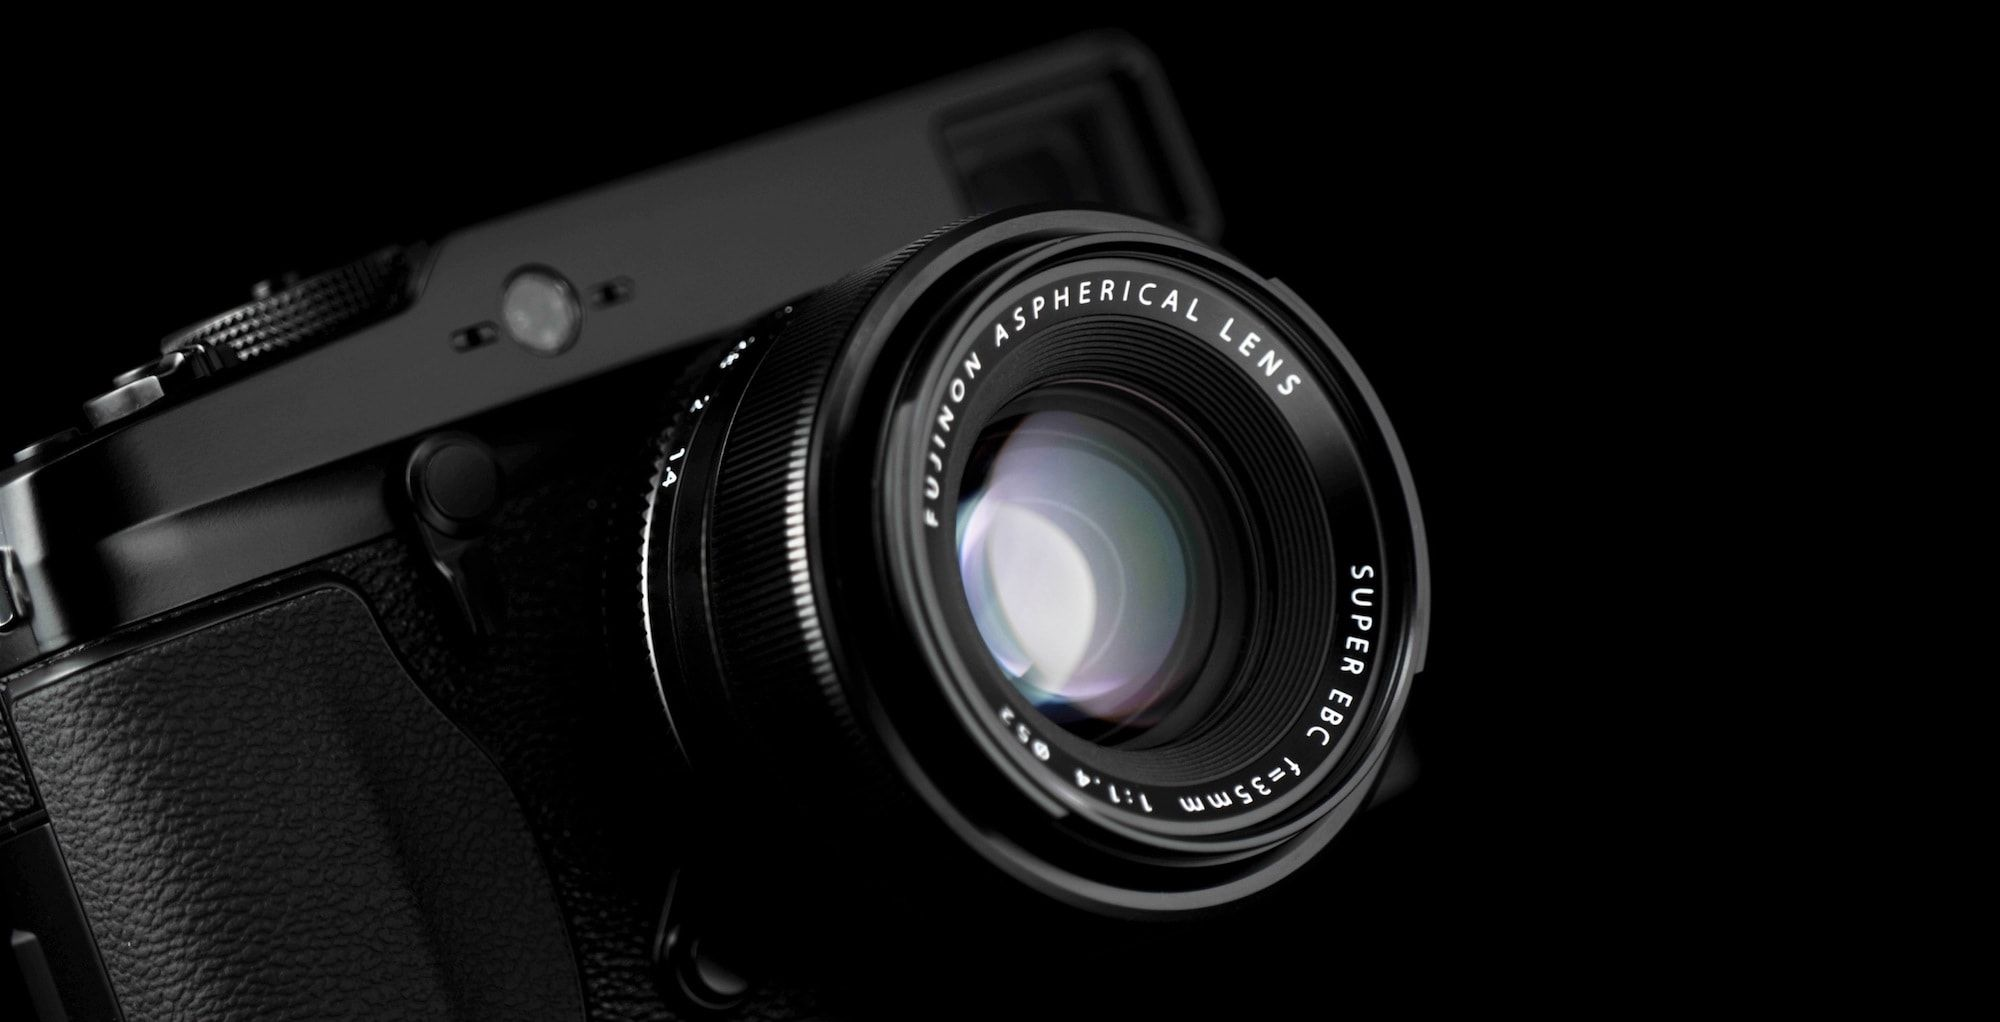 The Fujifilm X-Pro2 and the return to photographic zen